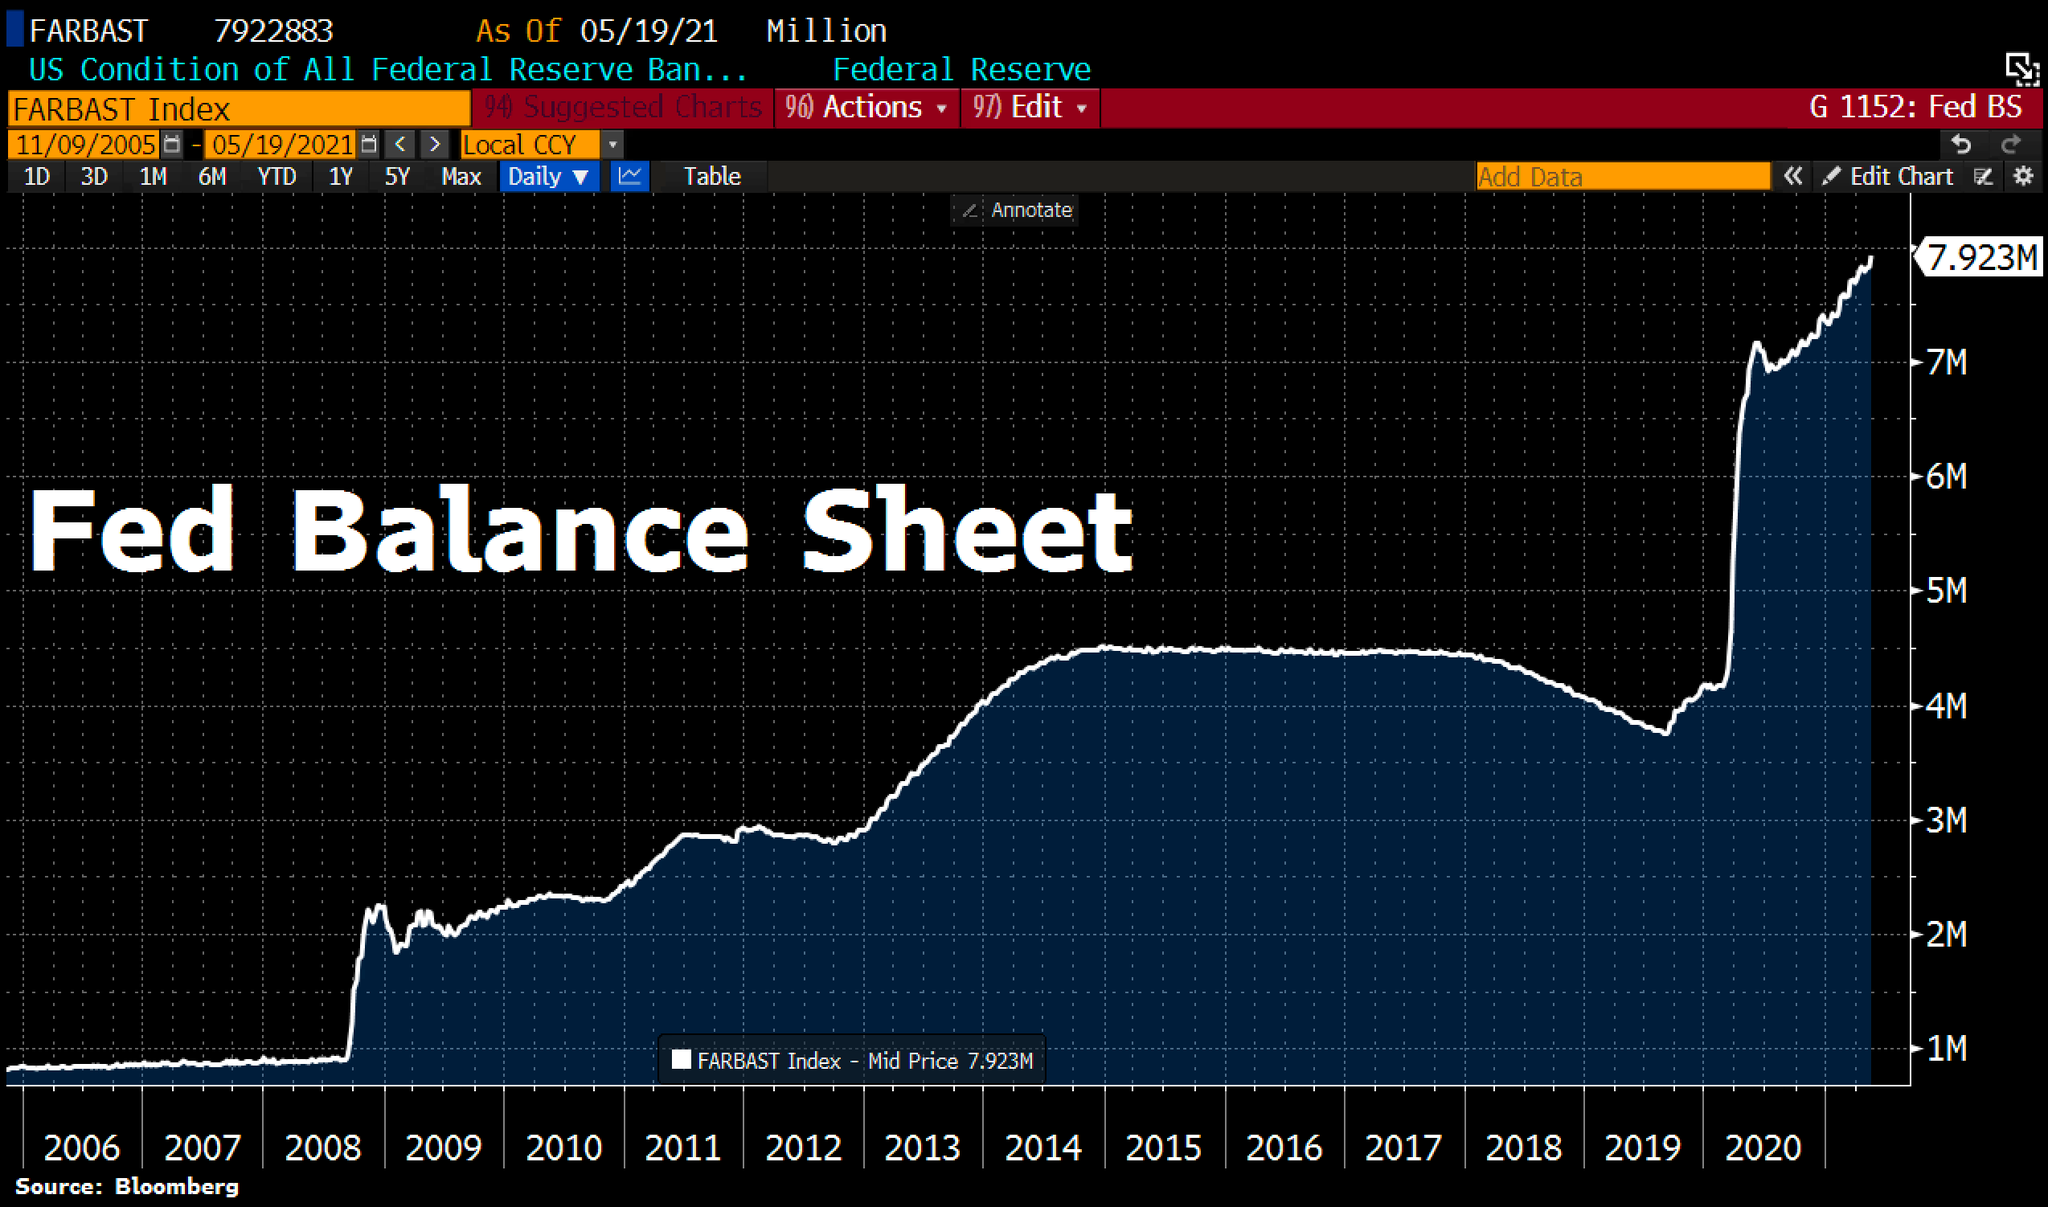 The Fed's Balance Sheet Expansion just saw its biggest weekly rise since March